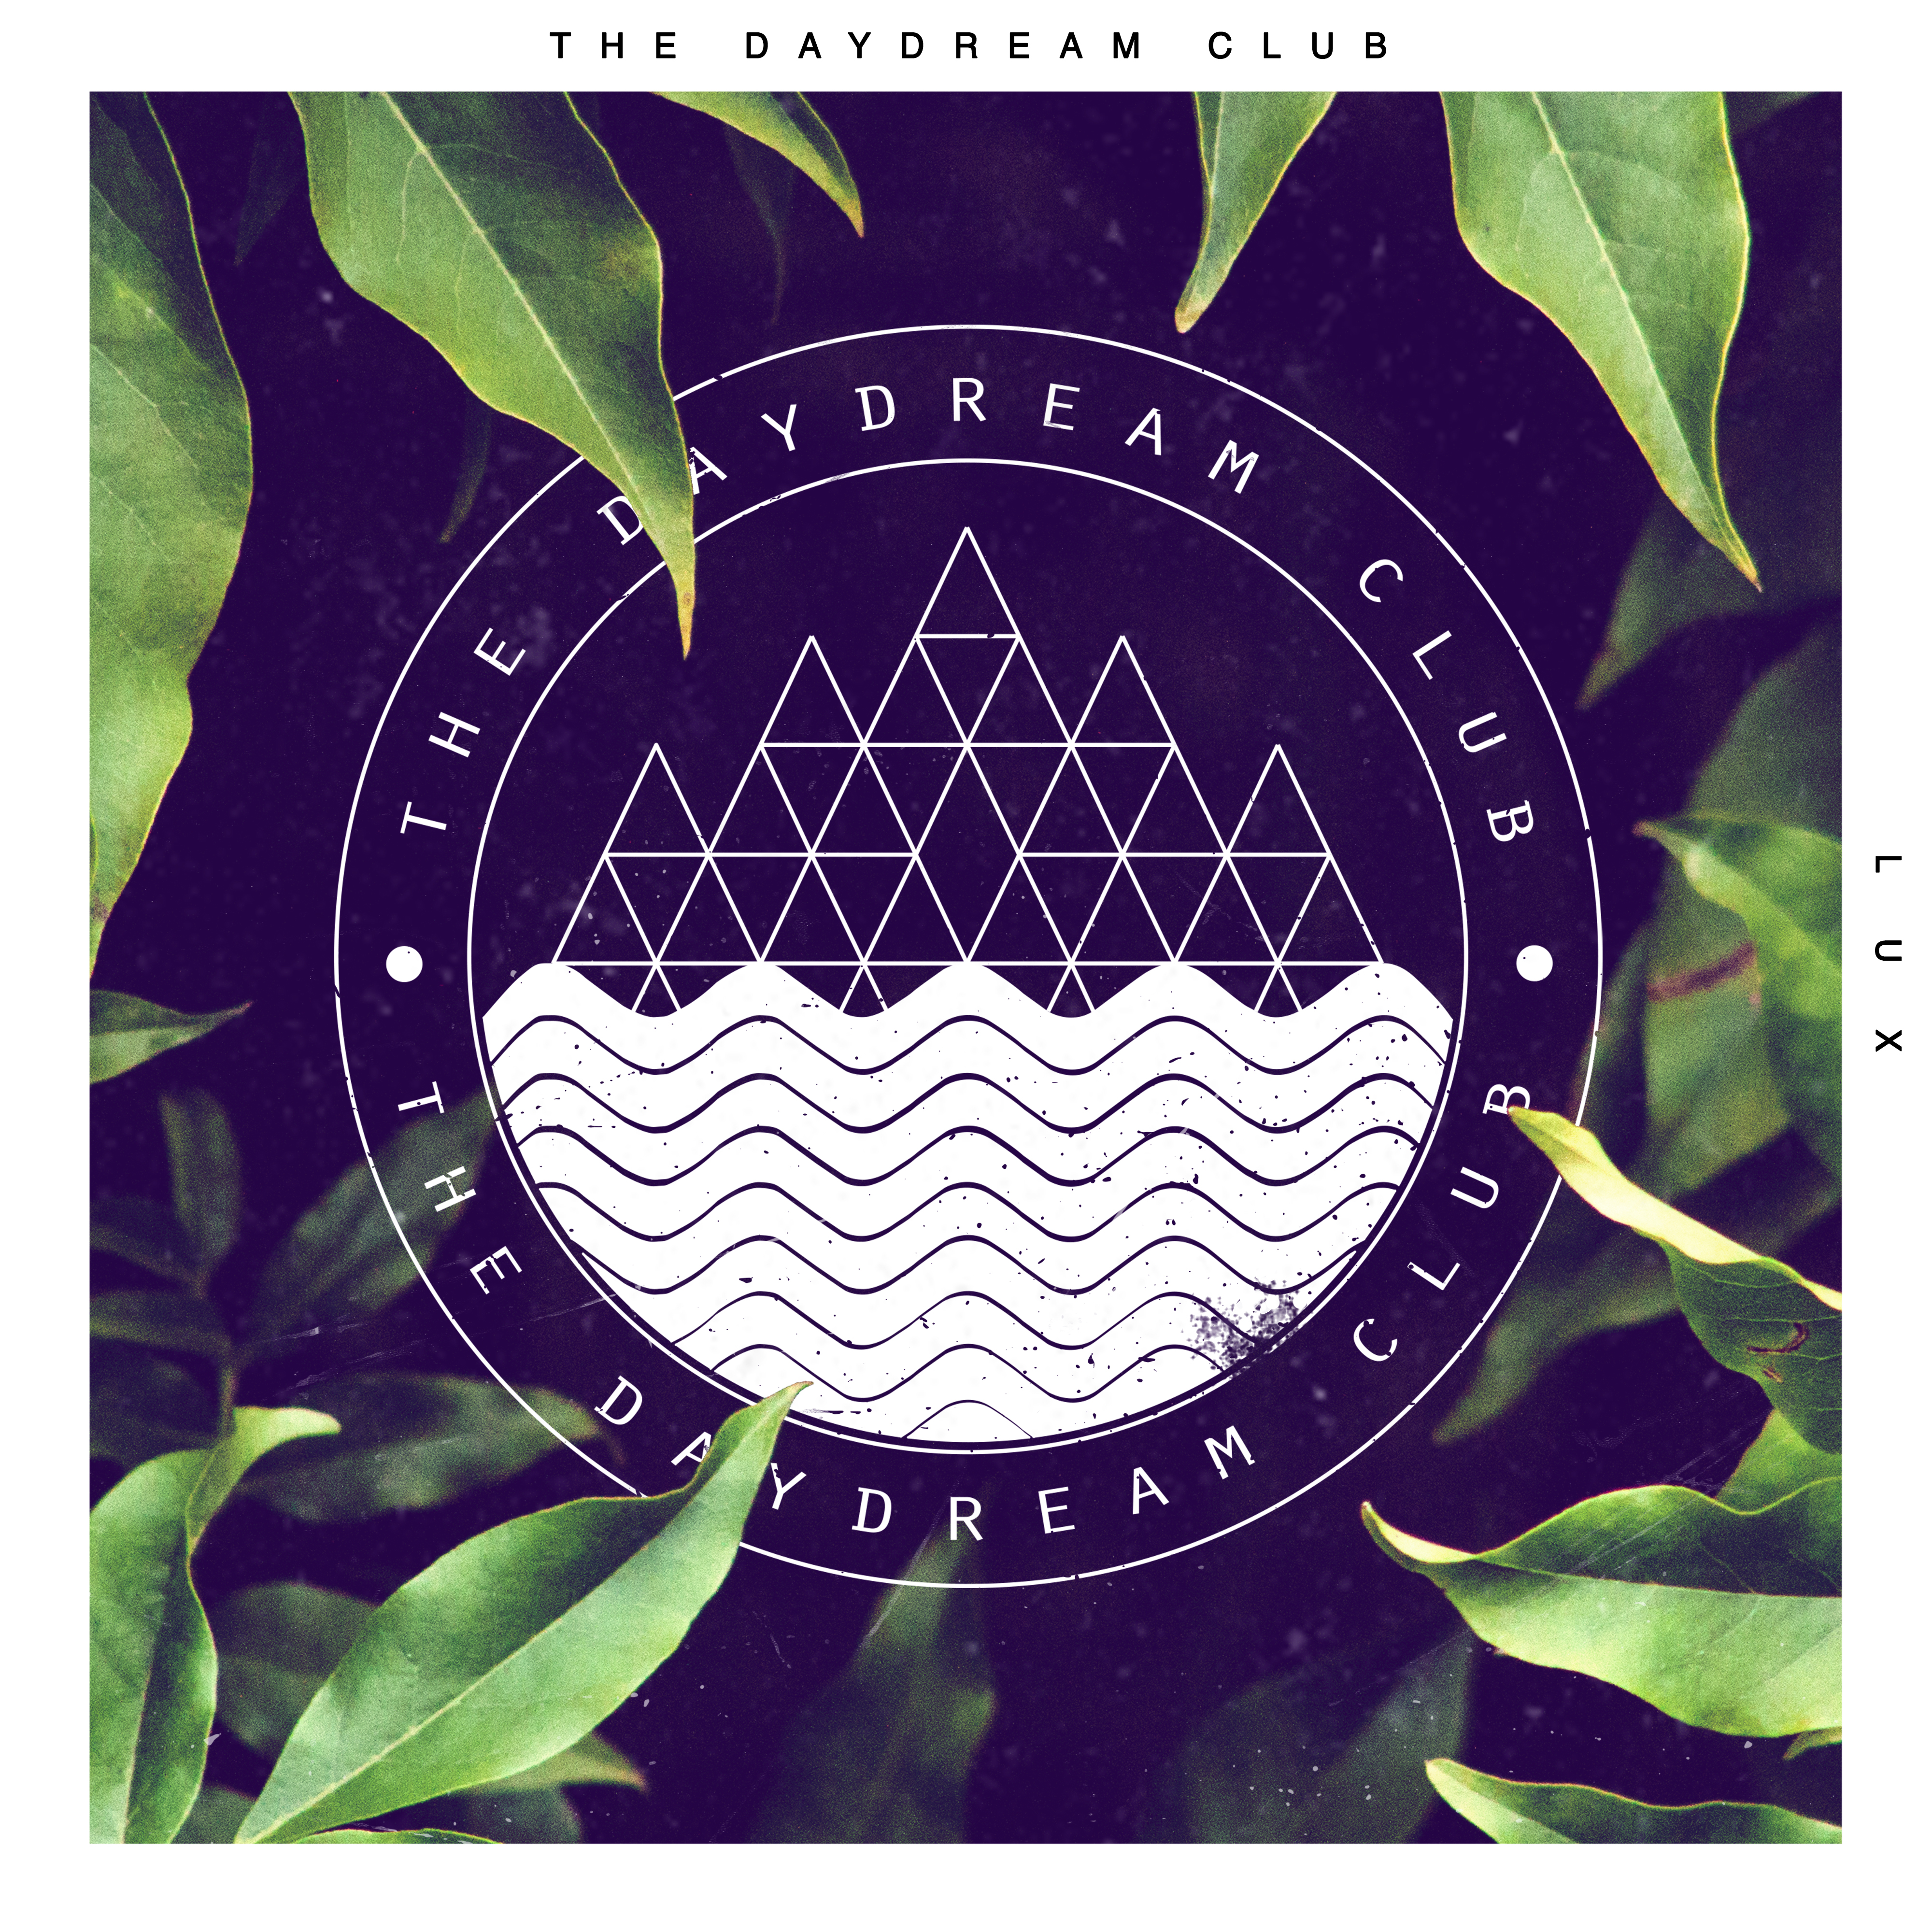 Lux by The Daydream Club - Artwork